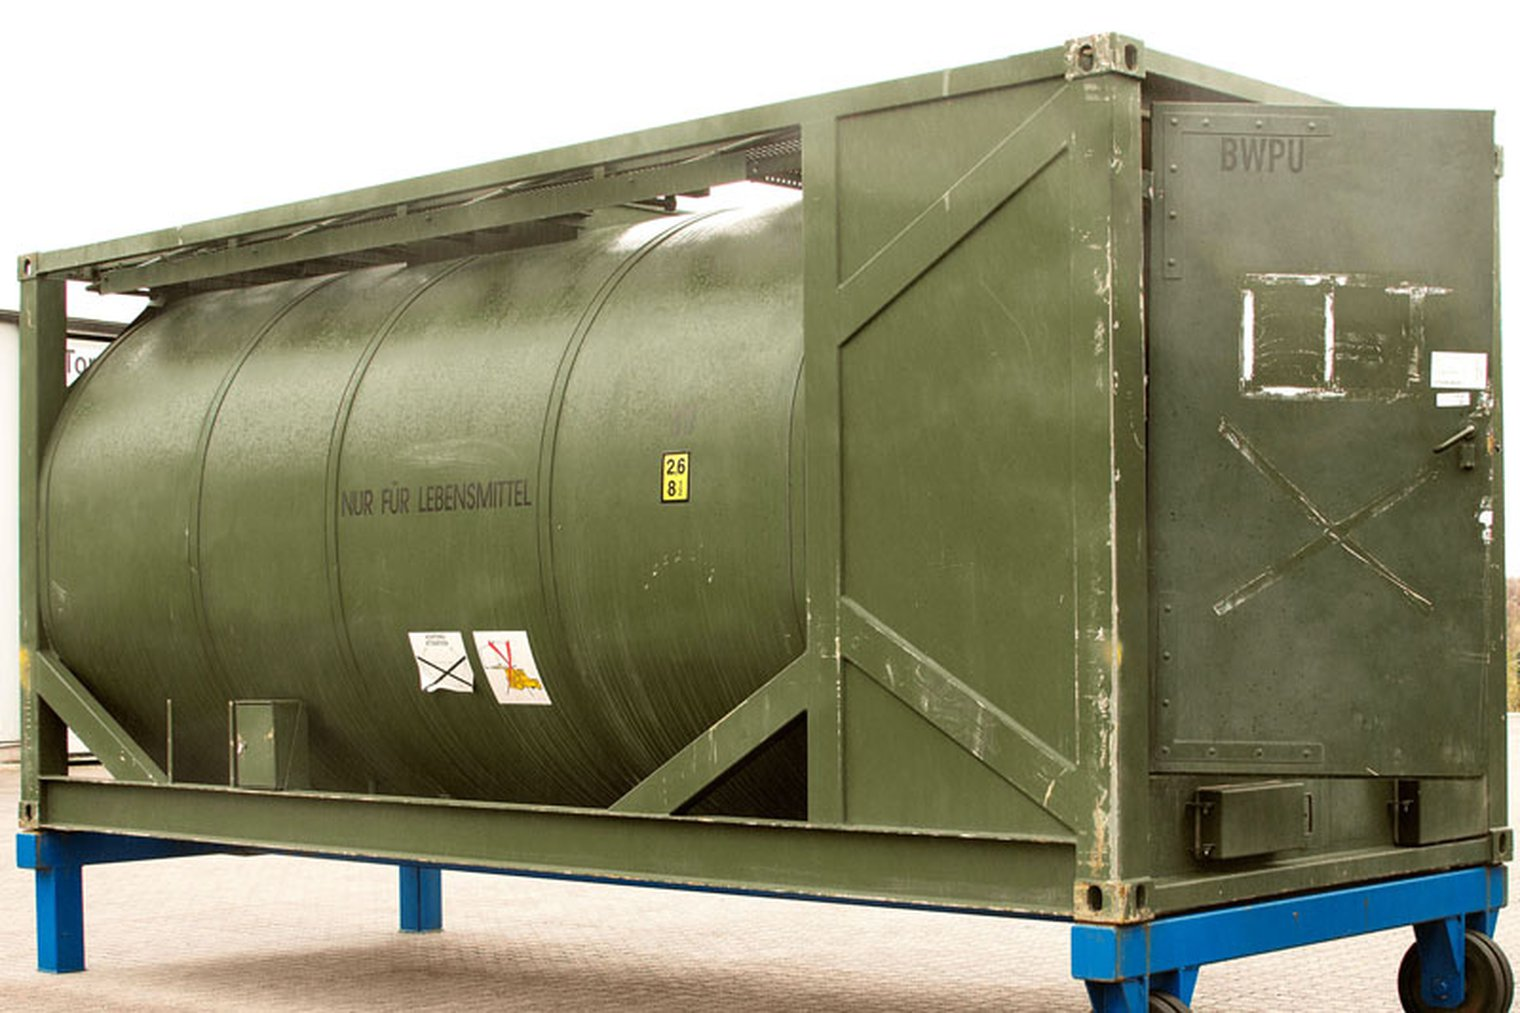 case one integrated logistics for dep gard By 2013, coinciding with increased base command opportunities and implementation of the dcms career progression enhancements, esu portsmouth and nesu portsmouth will become the c4it department and the naval engineering department respectively under the base to achieve the standard base construct end state.